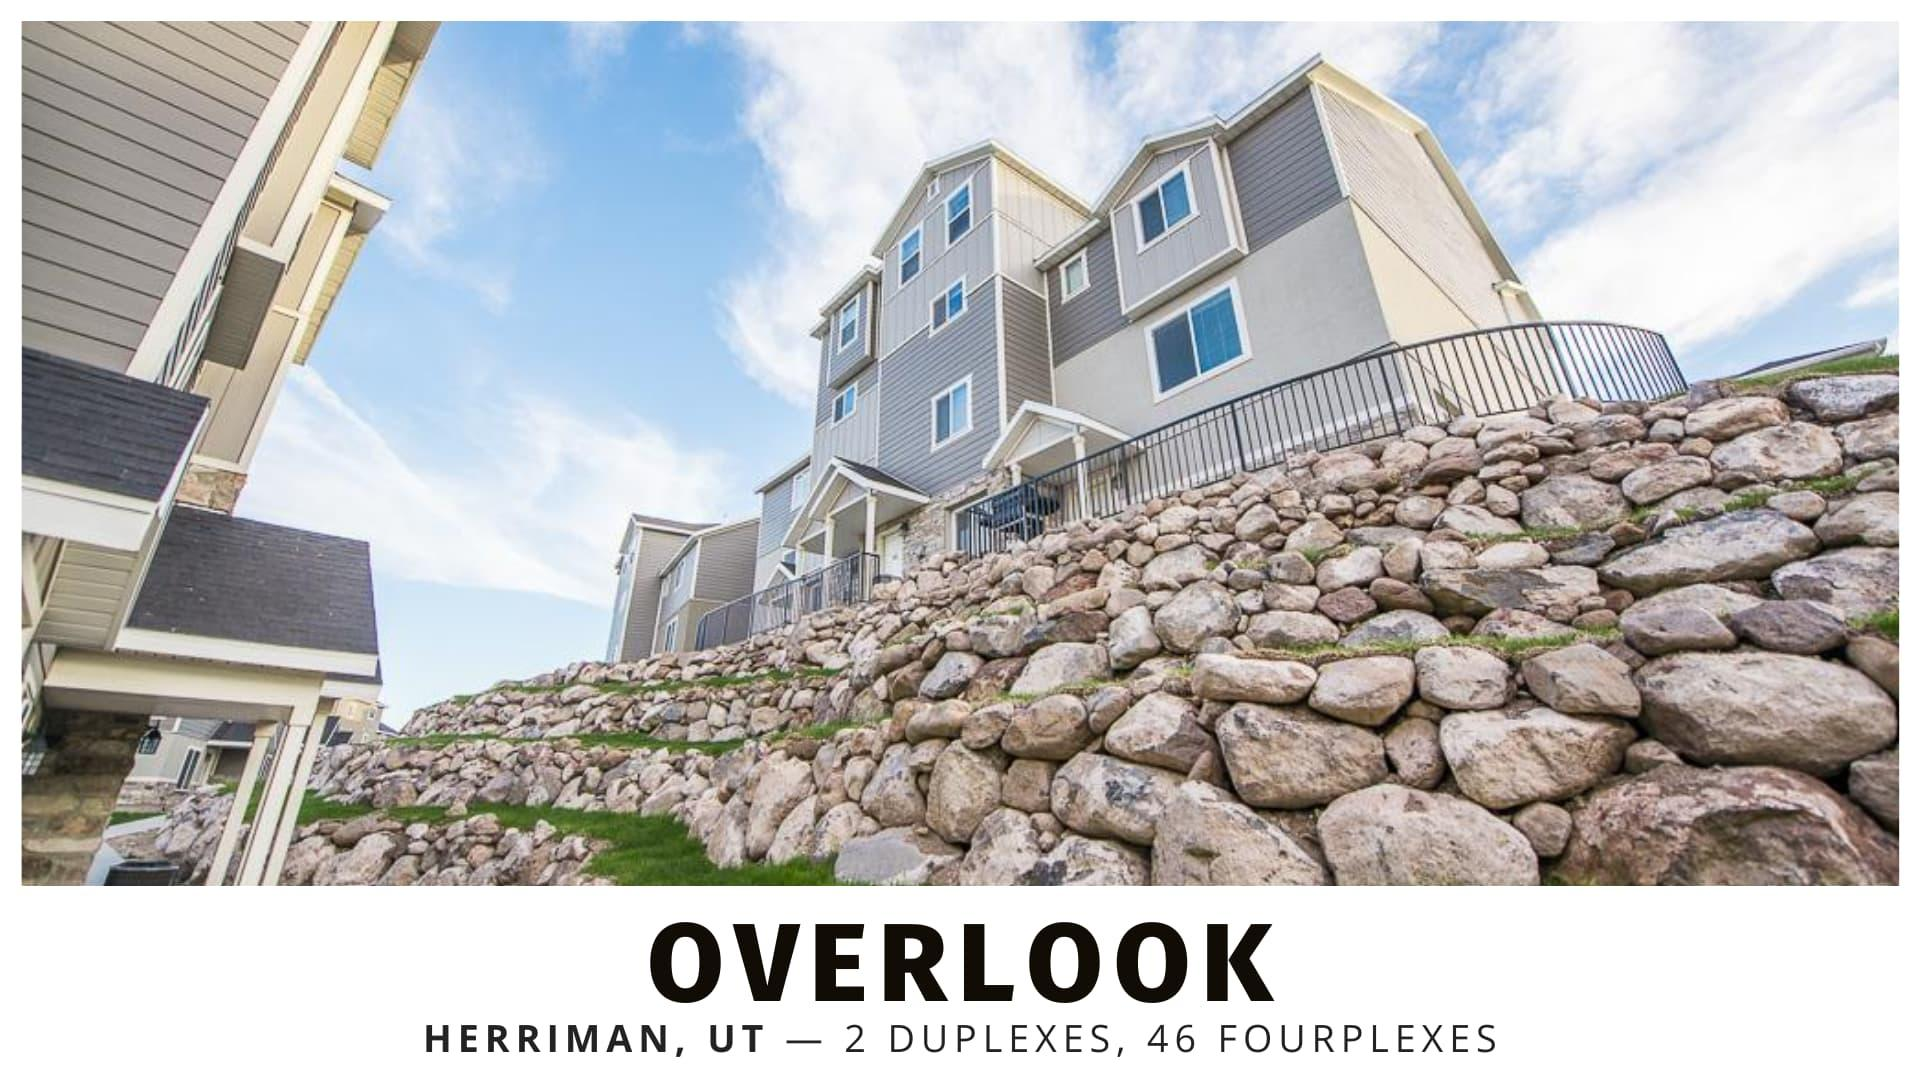 Overlook duplexes and fourplexes for sale in Utah